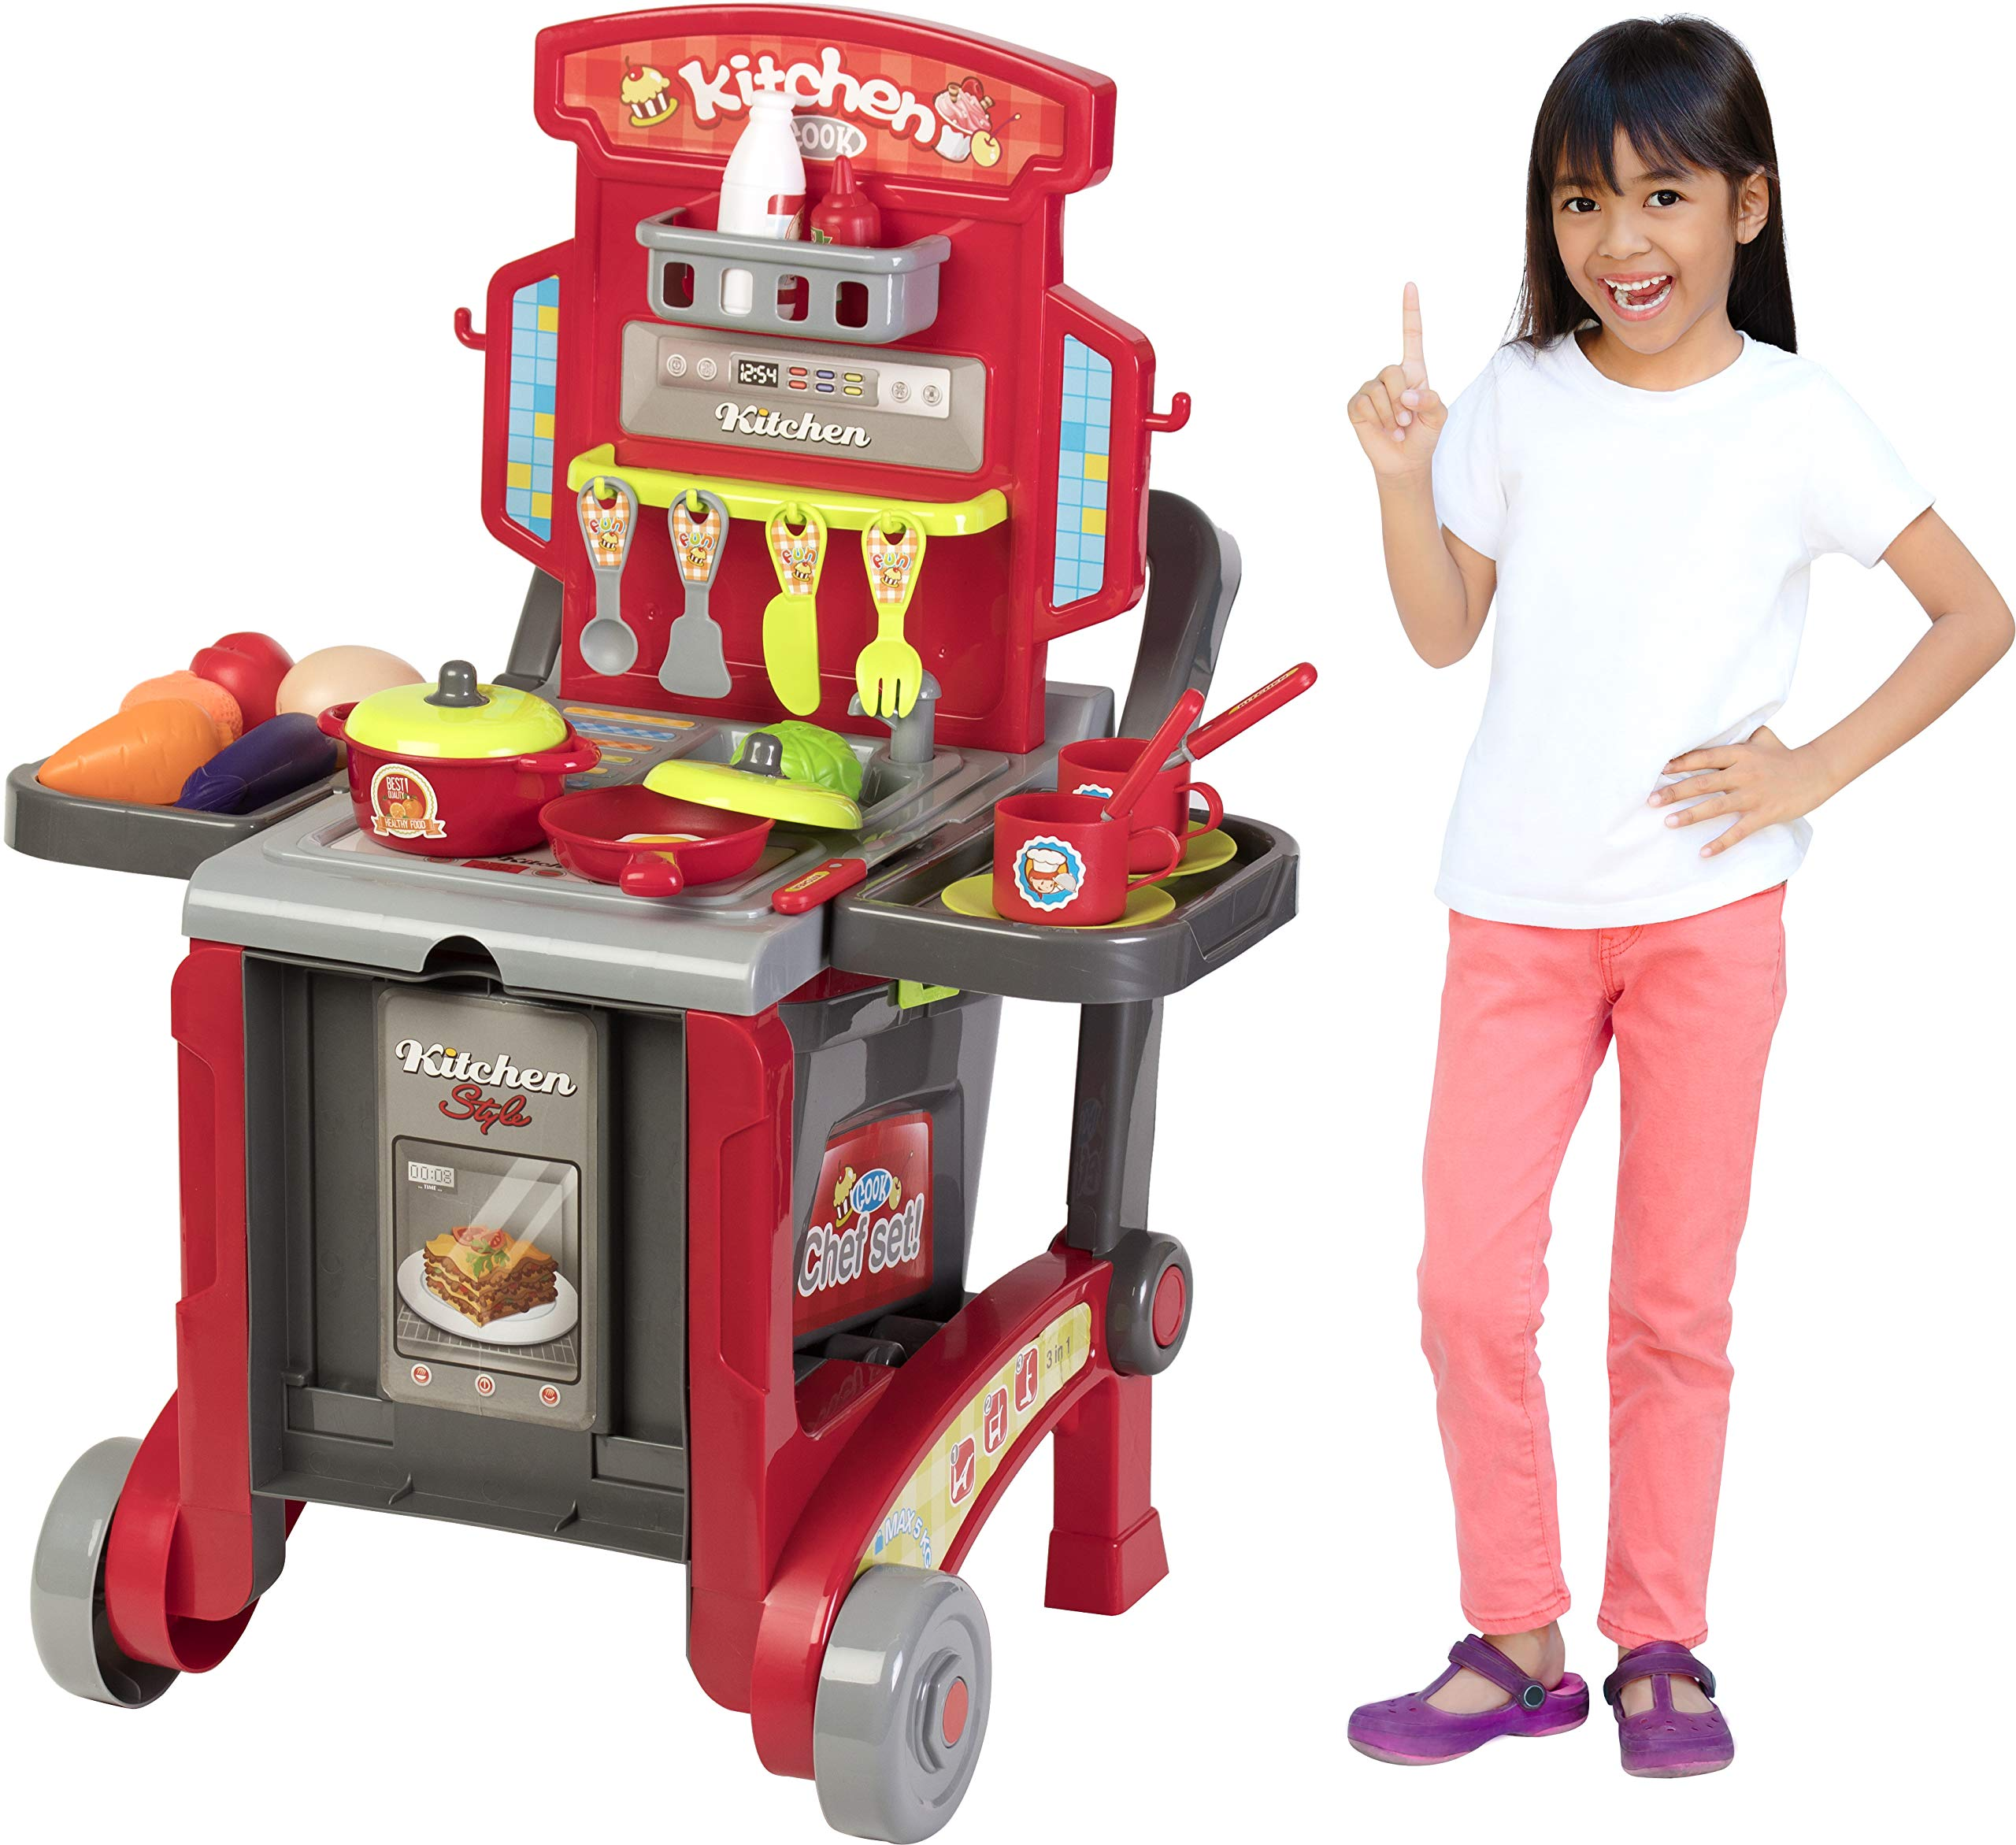 Kitchen Cook Grill Boys Playset Oven Stove, Vegetables, Pots & Pans, Cups, Utensils w/ Compact Carry Case